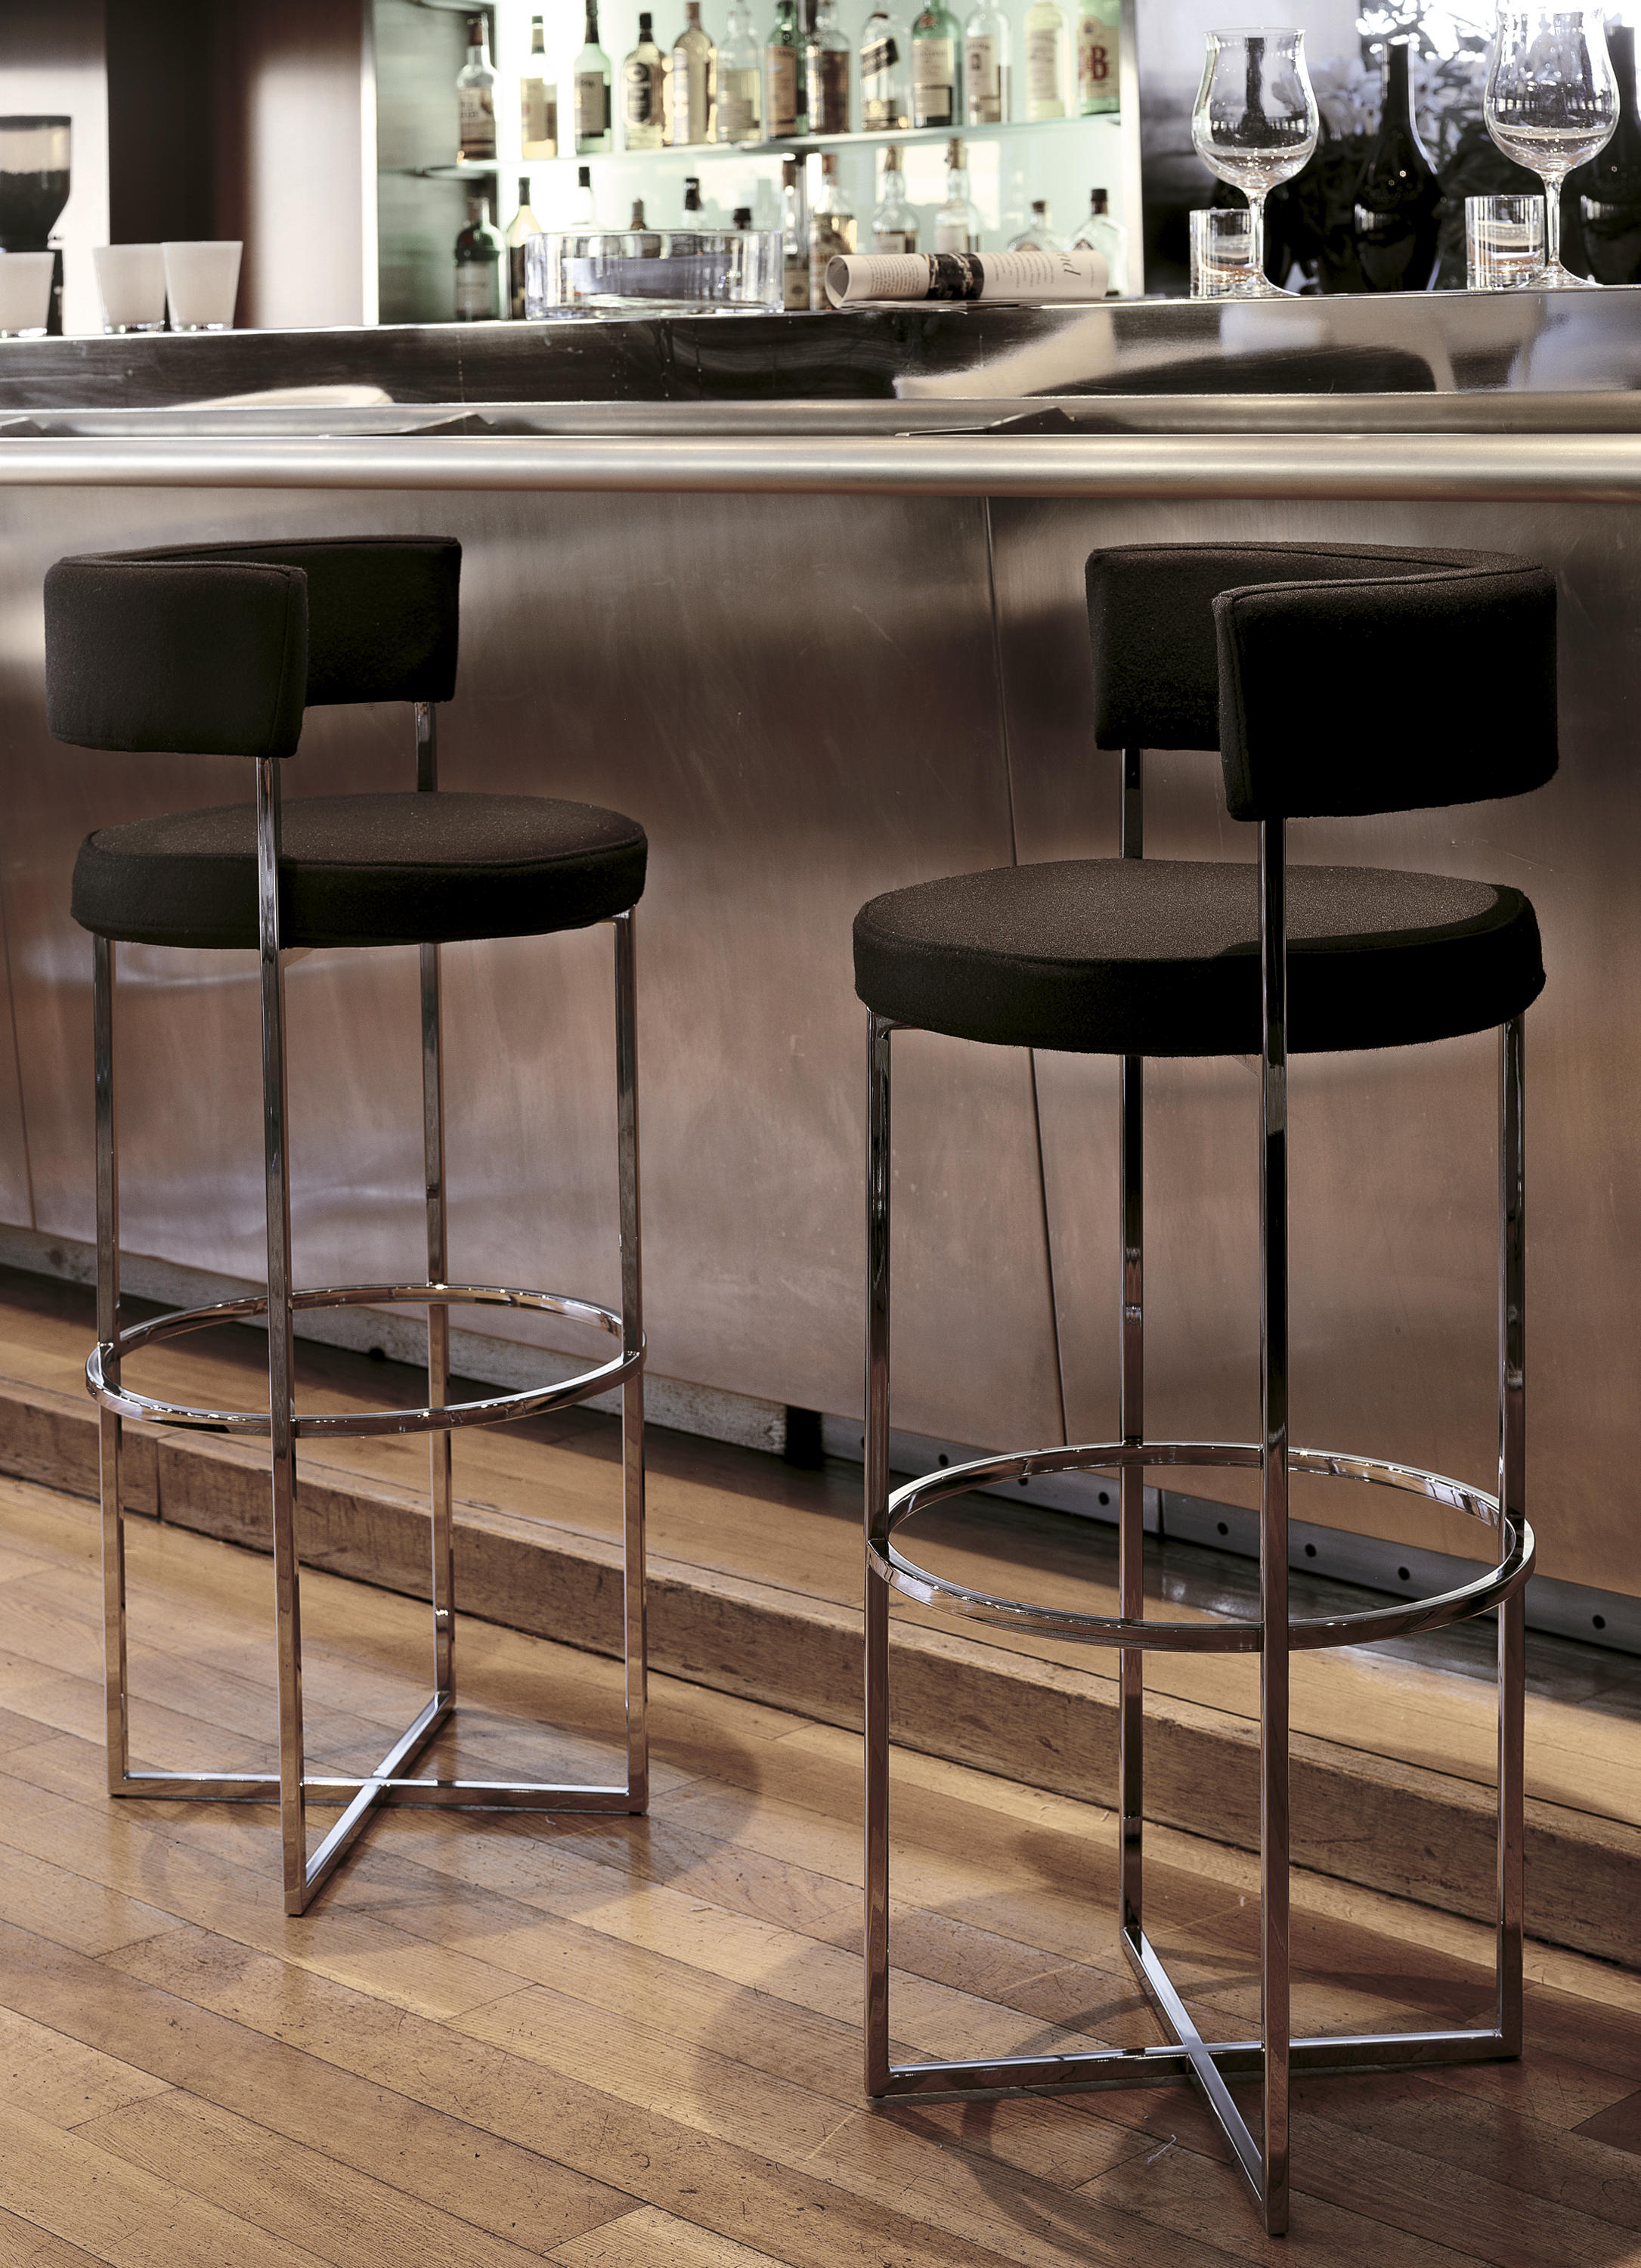 Sirio sgabello bar stools from porada architonic for Porada arredi srl